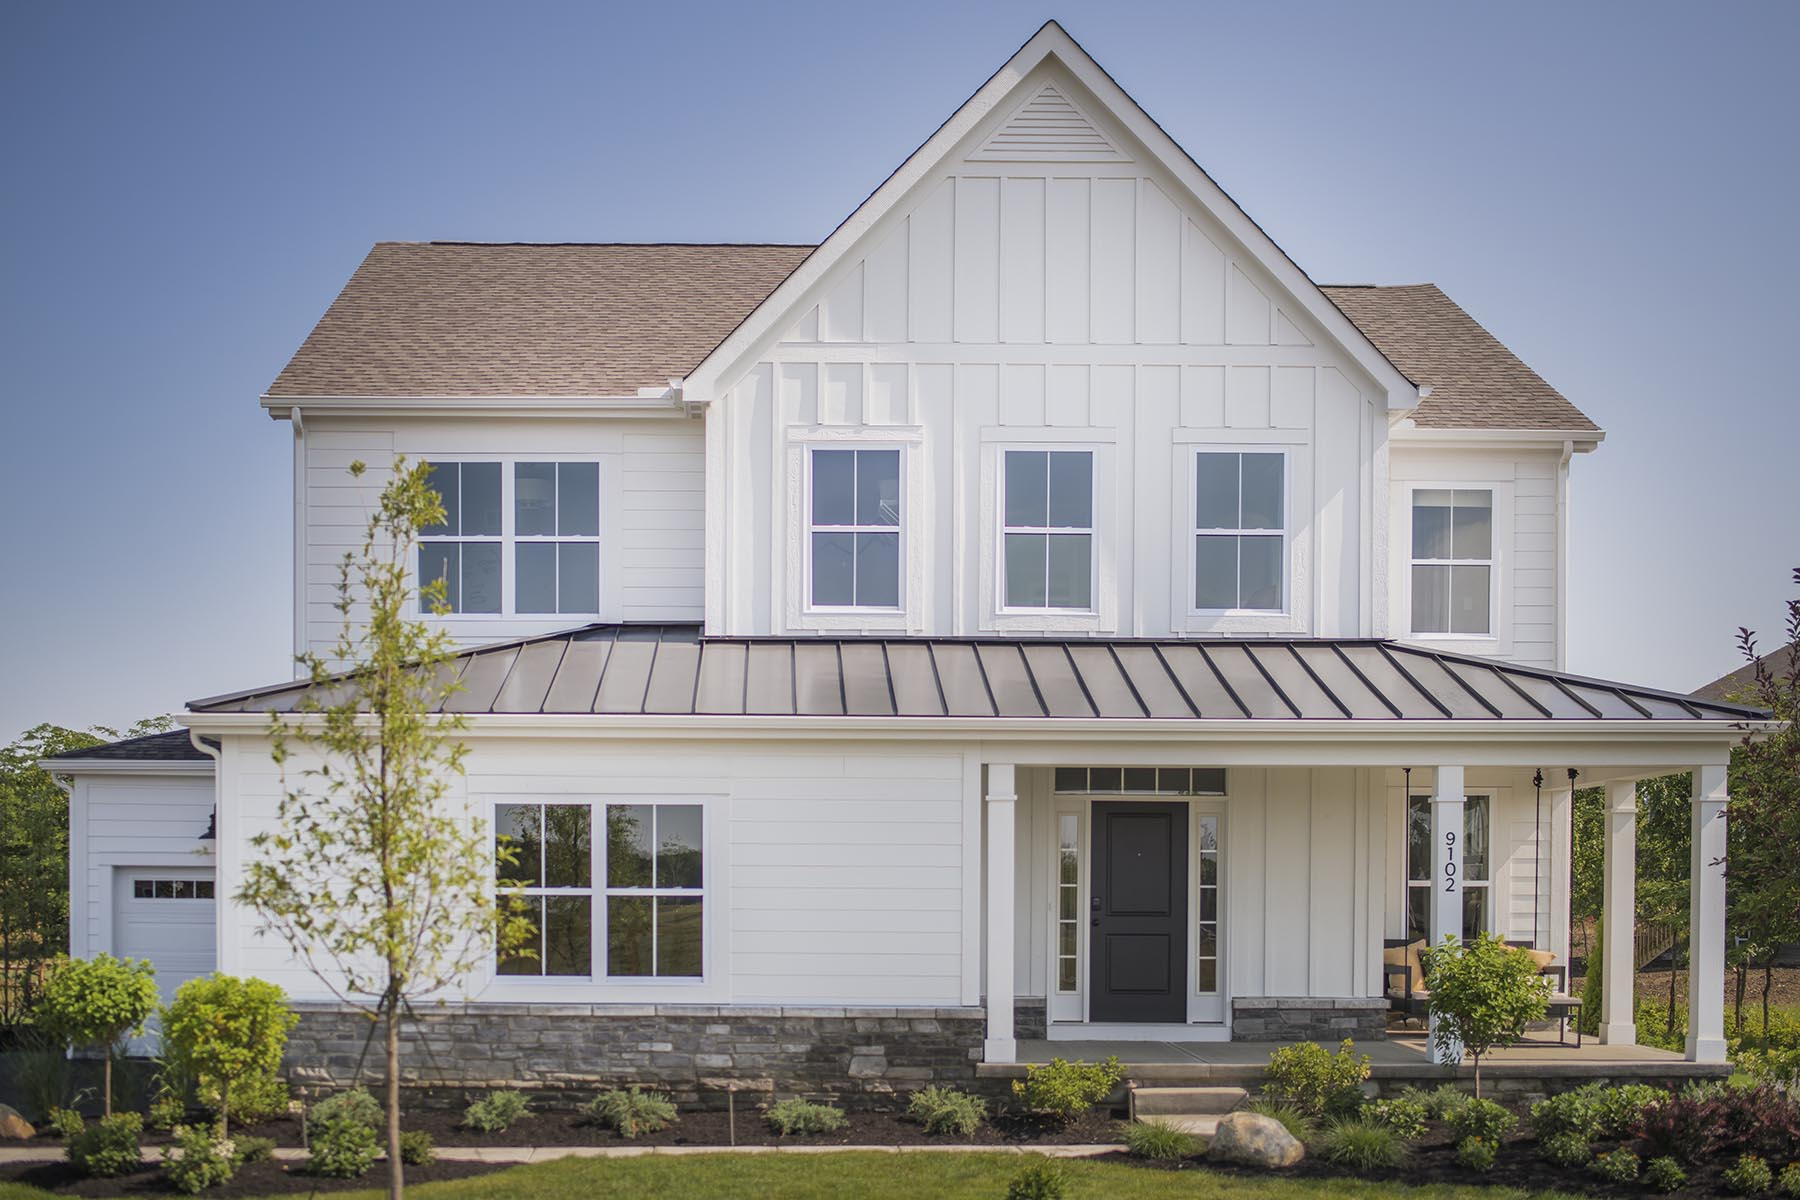 What's Your Exterior Home Style?